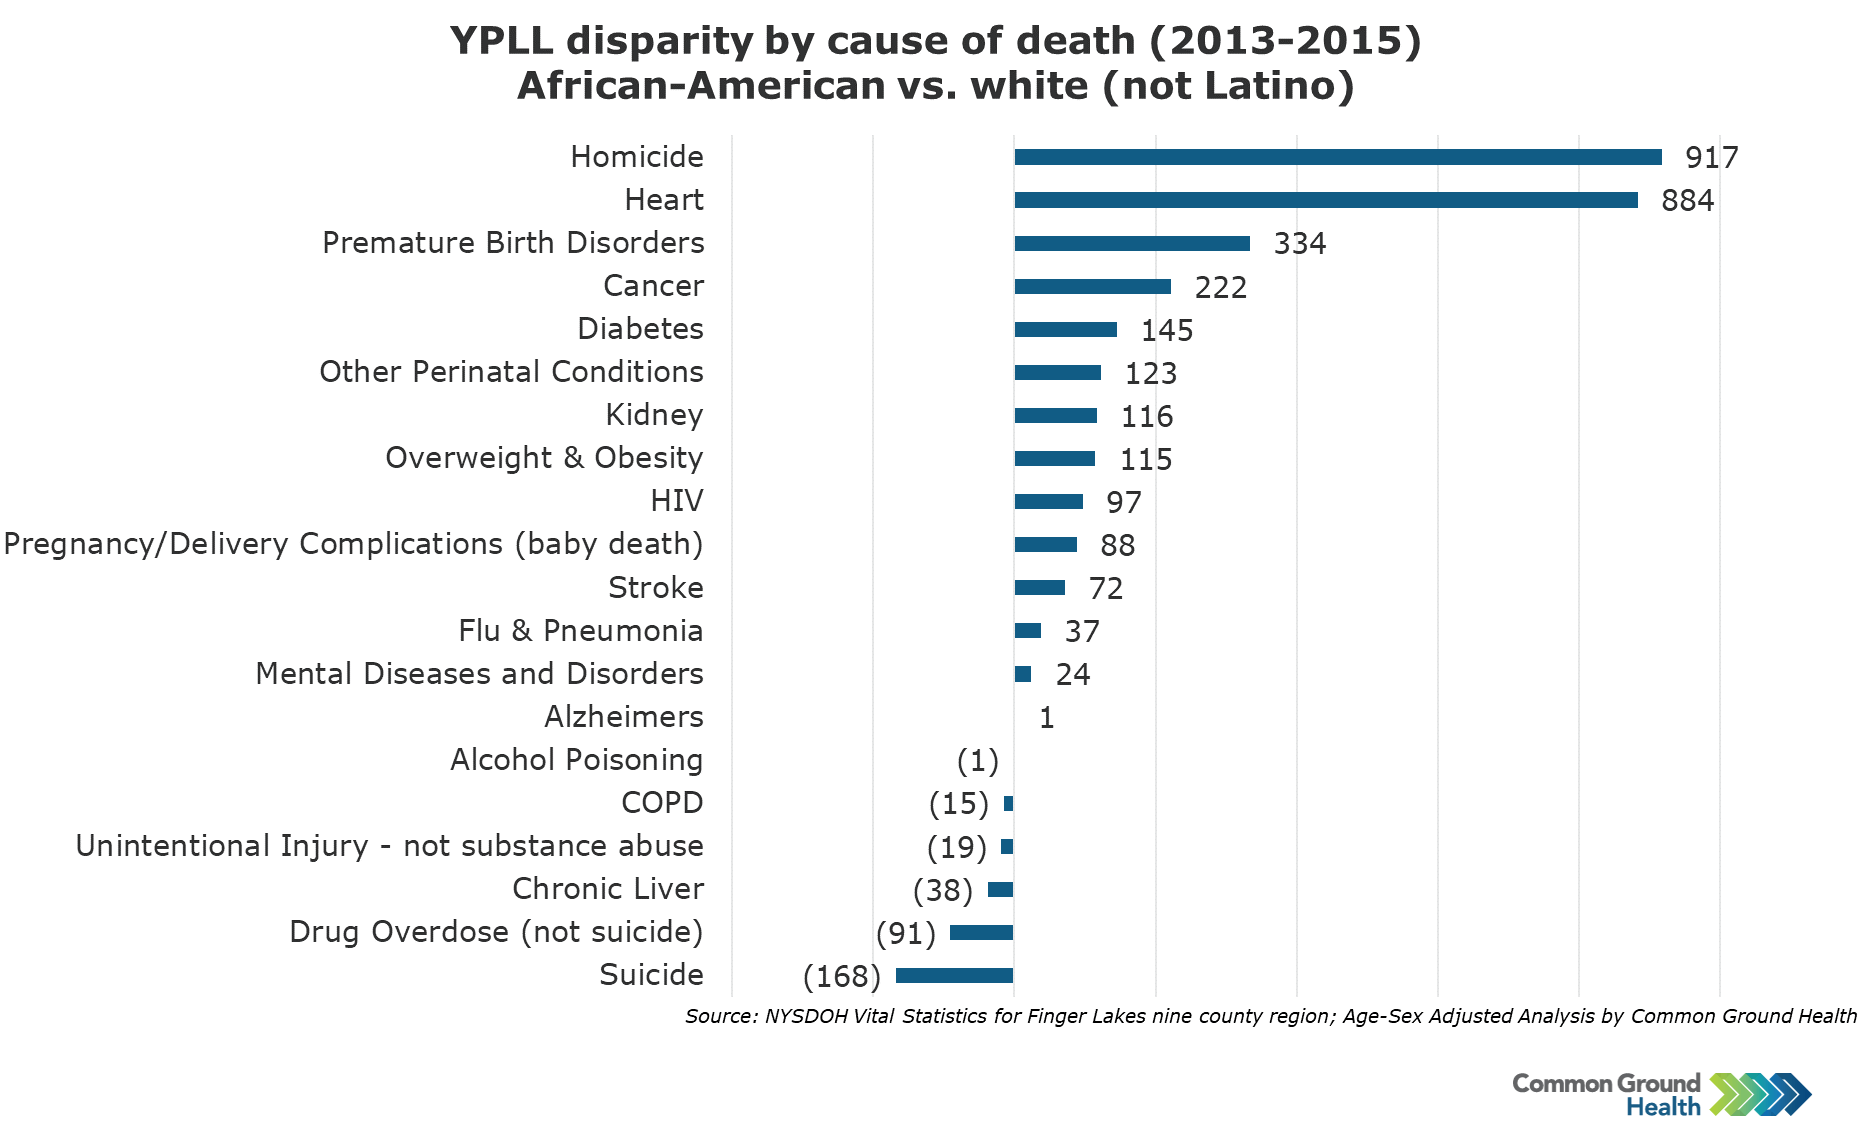 YPLL Disparity by Cause of Death, African-American vs White (not Latino)